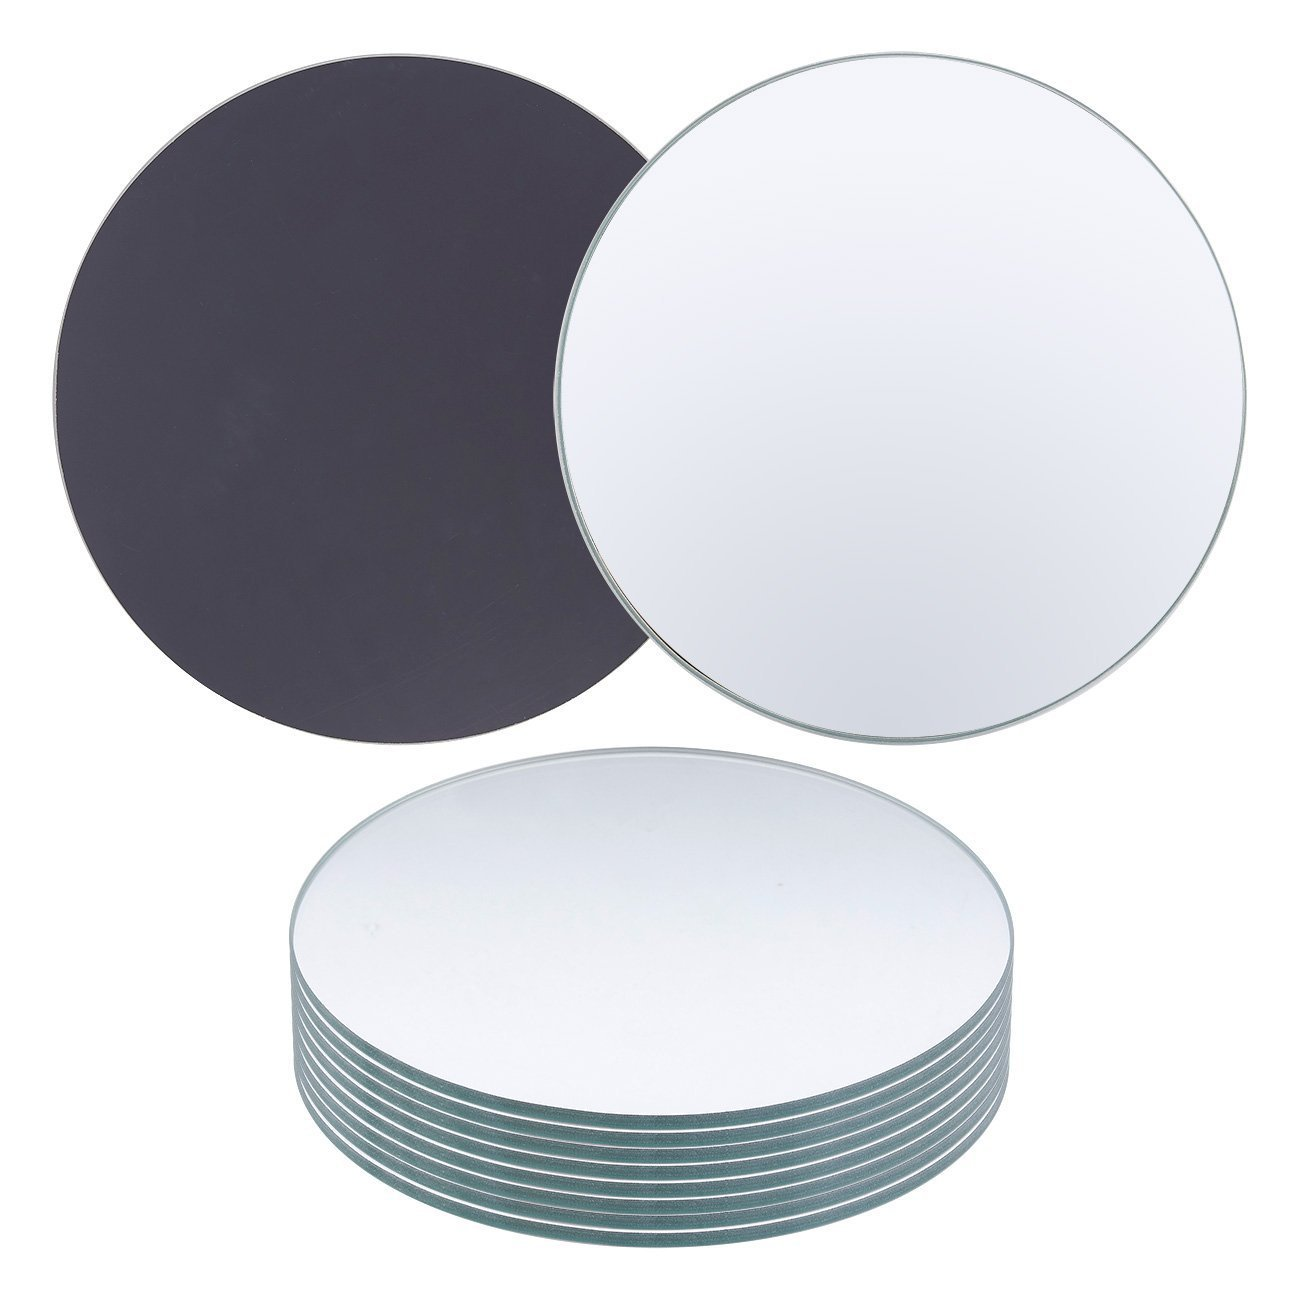 Juvale Round Glass Mirrors - 10-Pack Candle Plates - Perfect for Wall Decor, Crafts, Party Centerpieces - Clear, 10 Inches Diameter